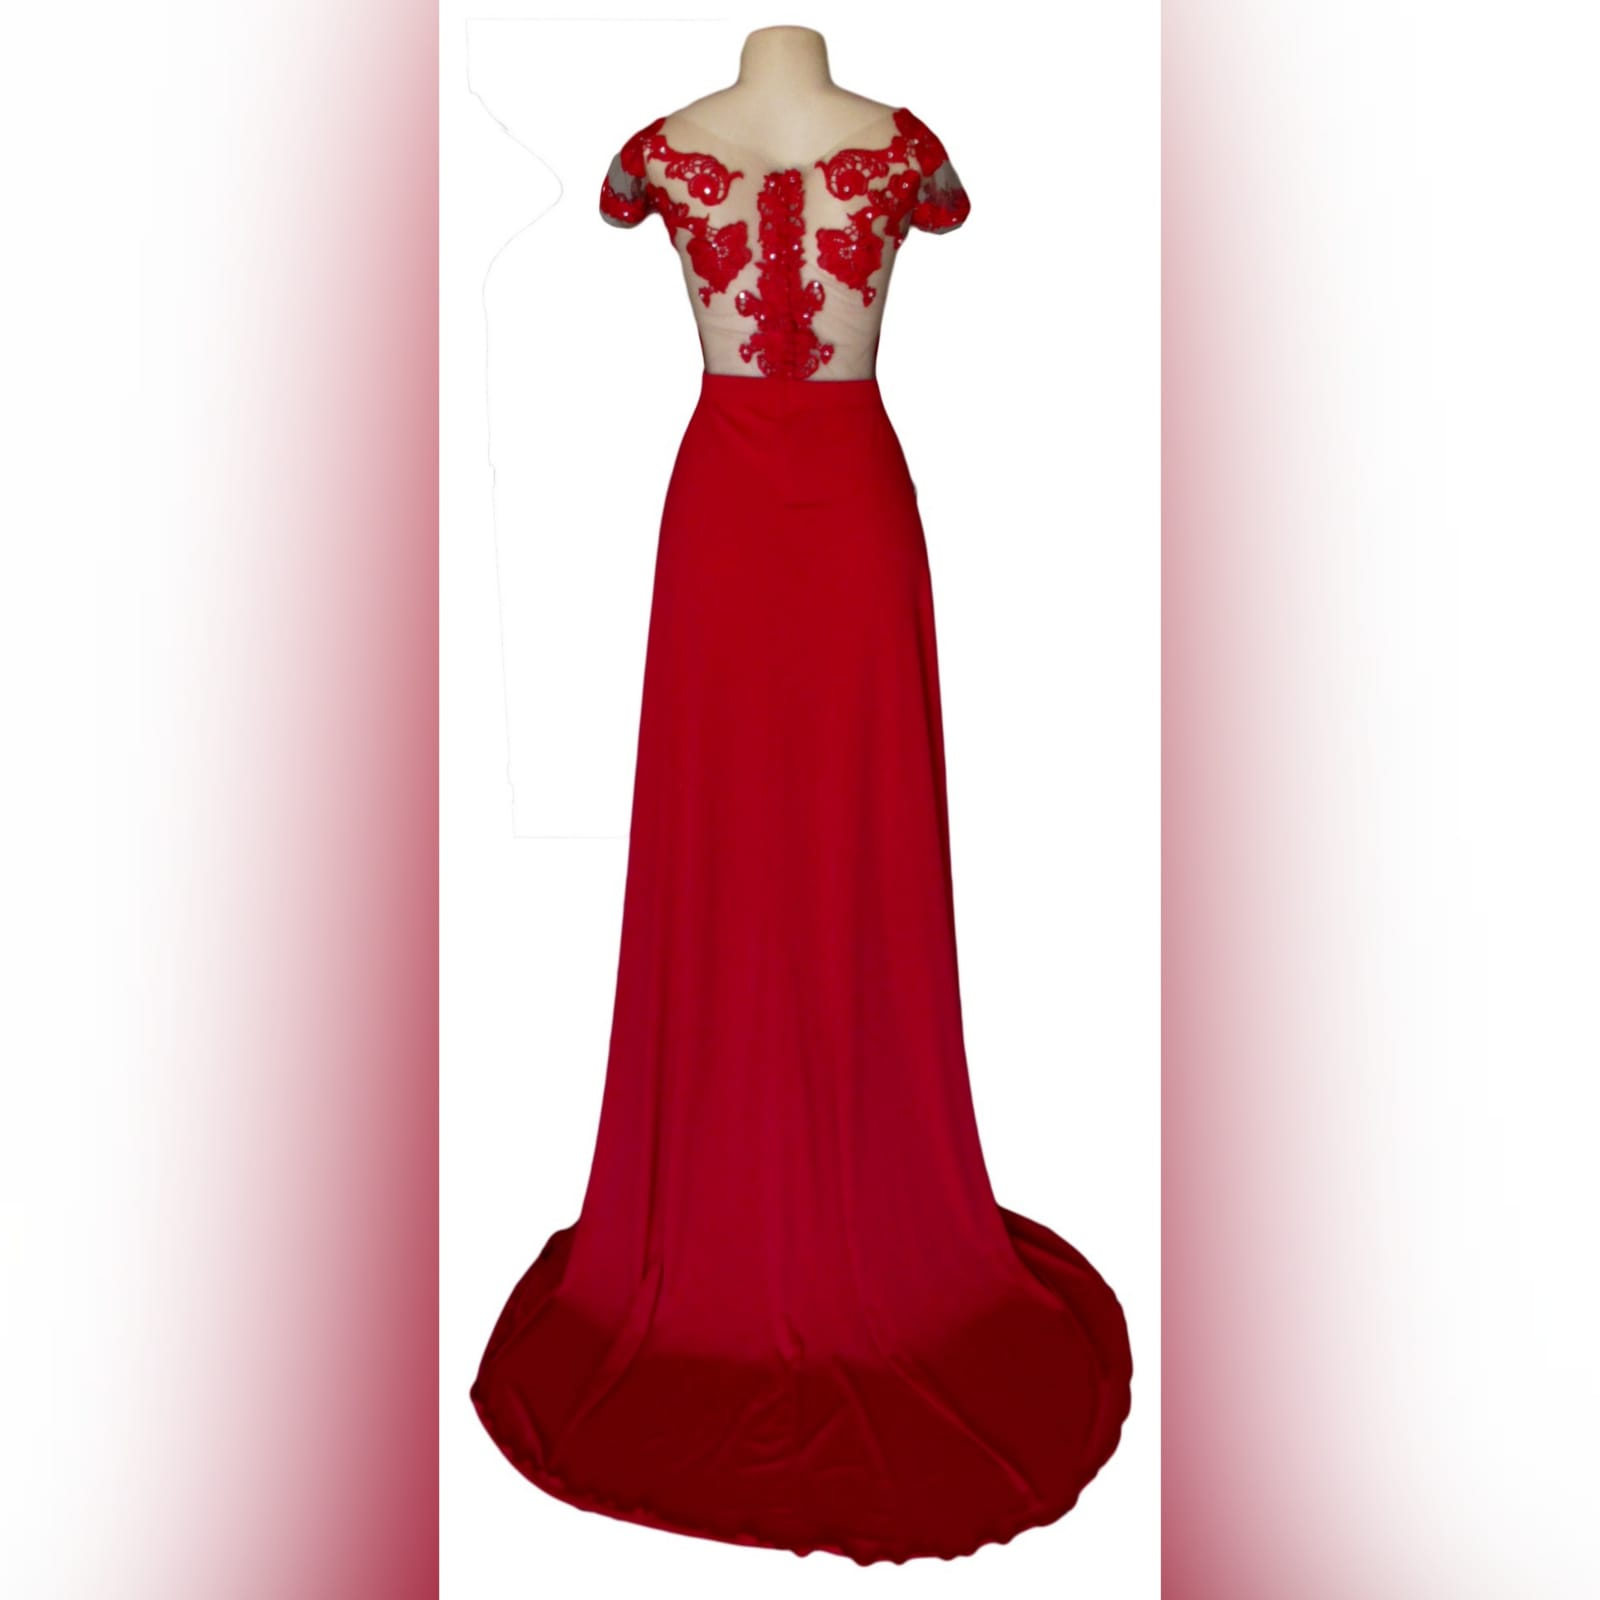 Red flowy lace bodice prom dress 4 red flowy lace bodice prom dress. With an illusion lace bodice detailed with silver beads and buttons. Evening dress with a slit and a train.